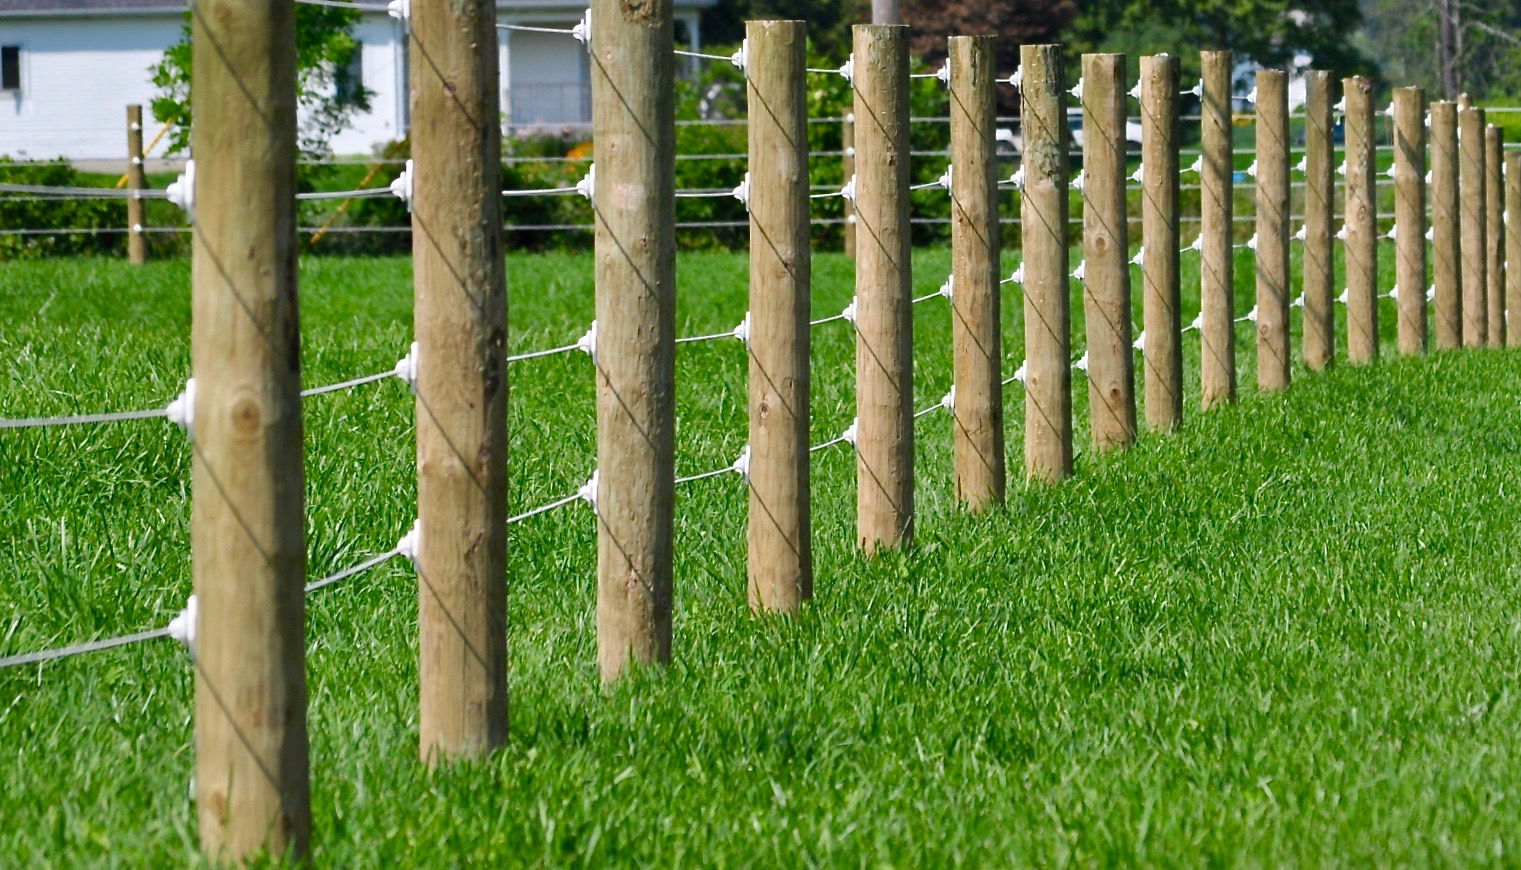 How to pound a fence post 6 tips to a fence installation for Fence installation tips